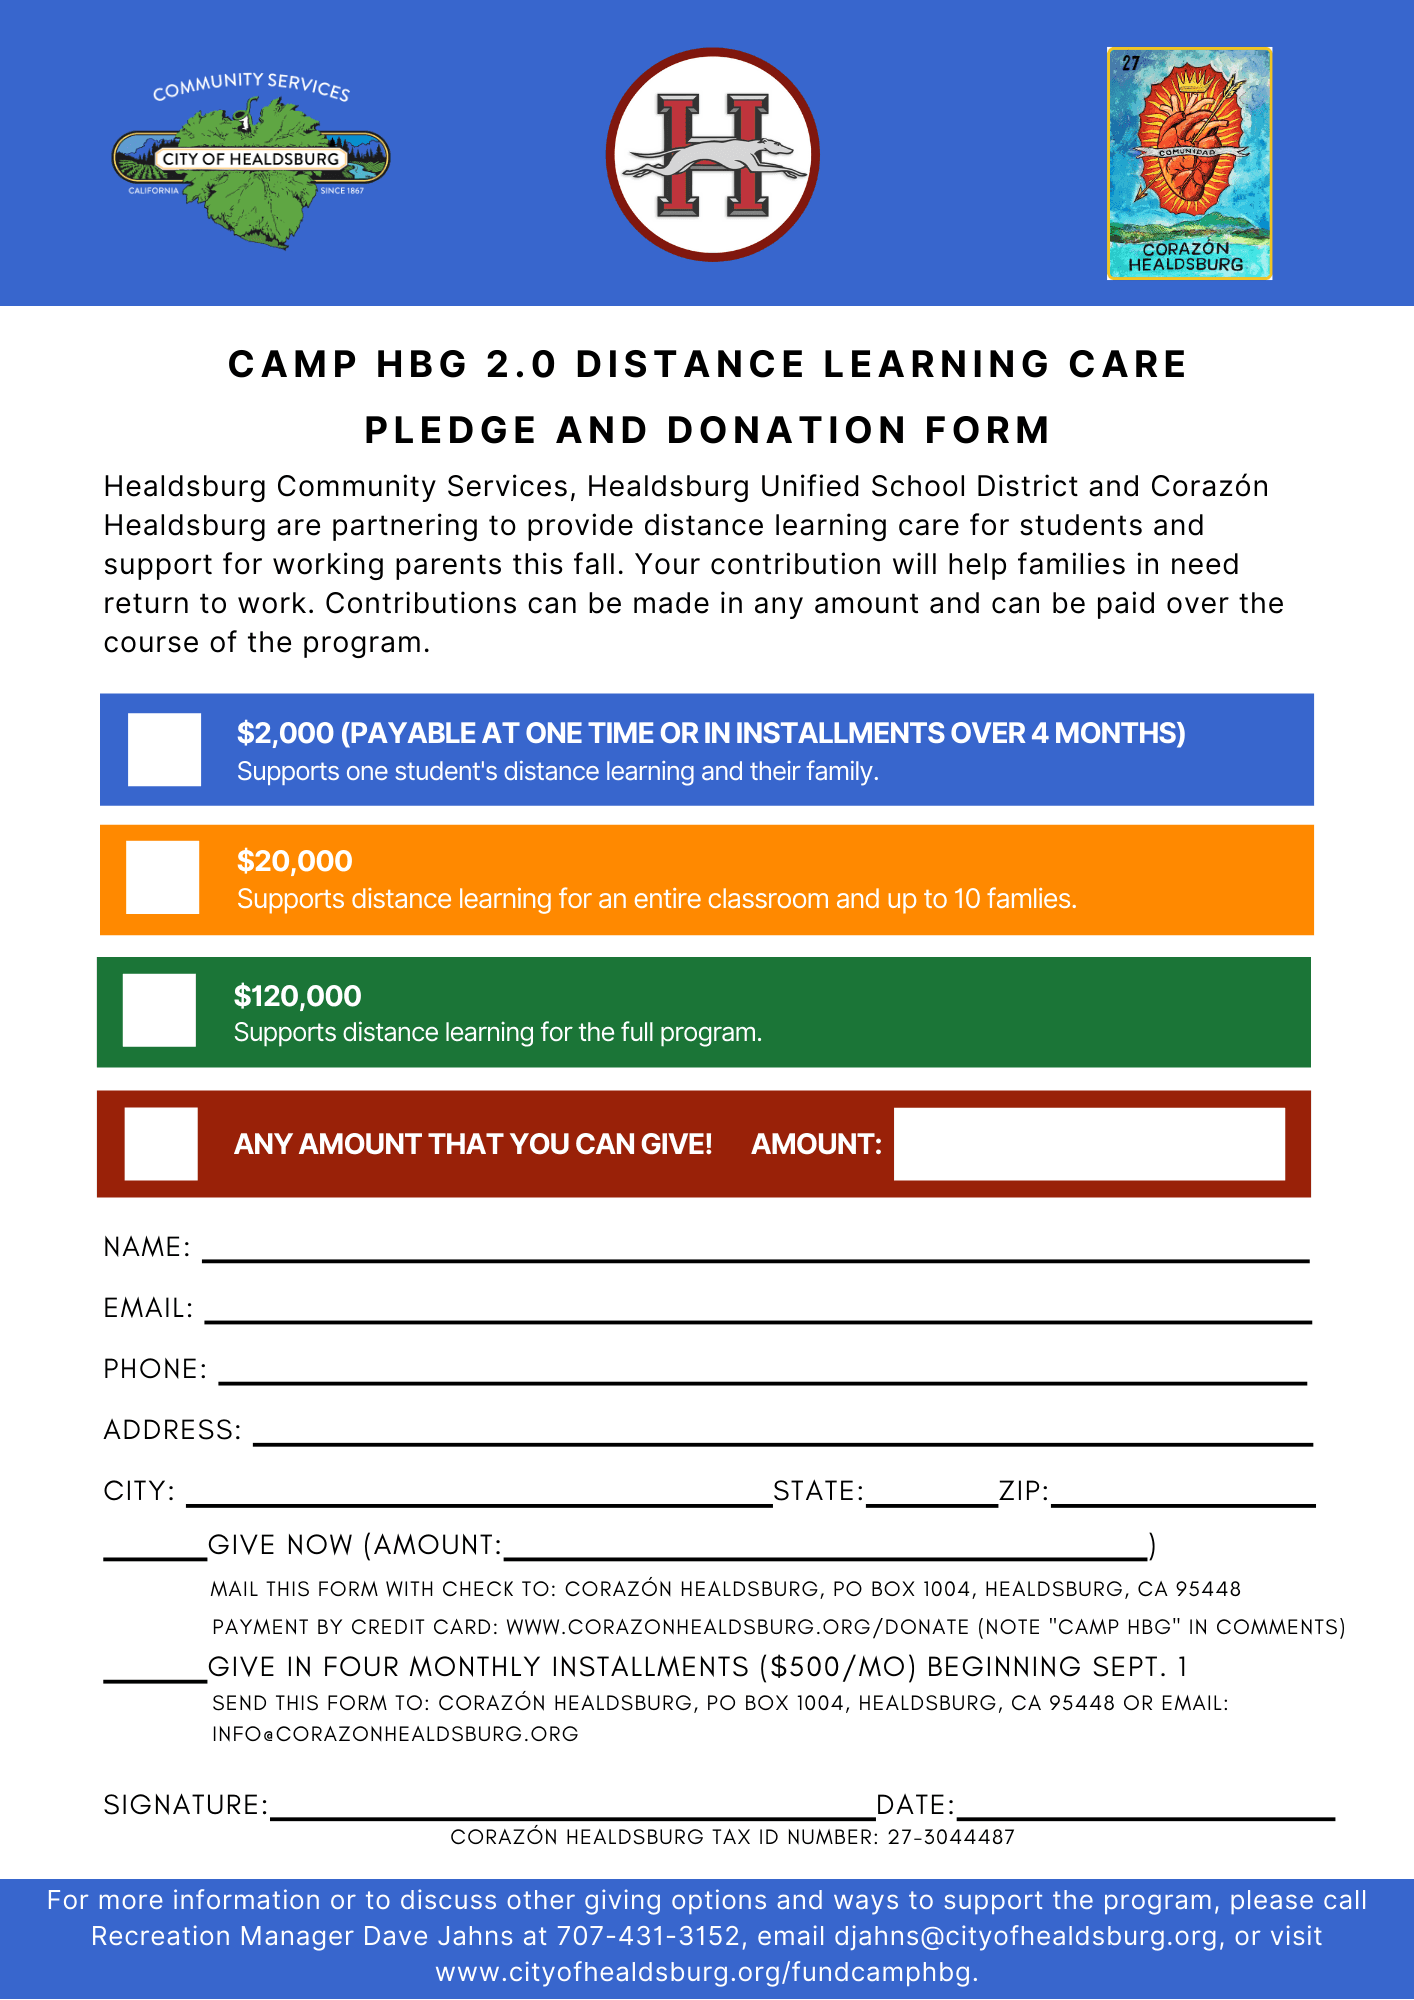 Camp HBG 2.0 Pledge and Donation Form